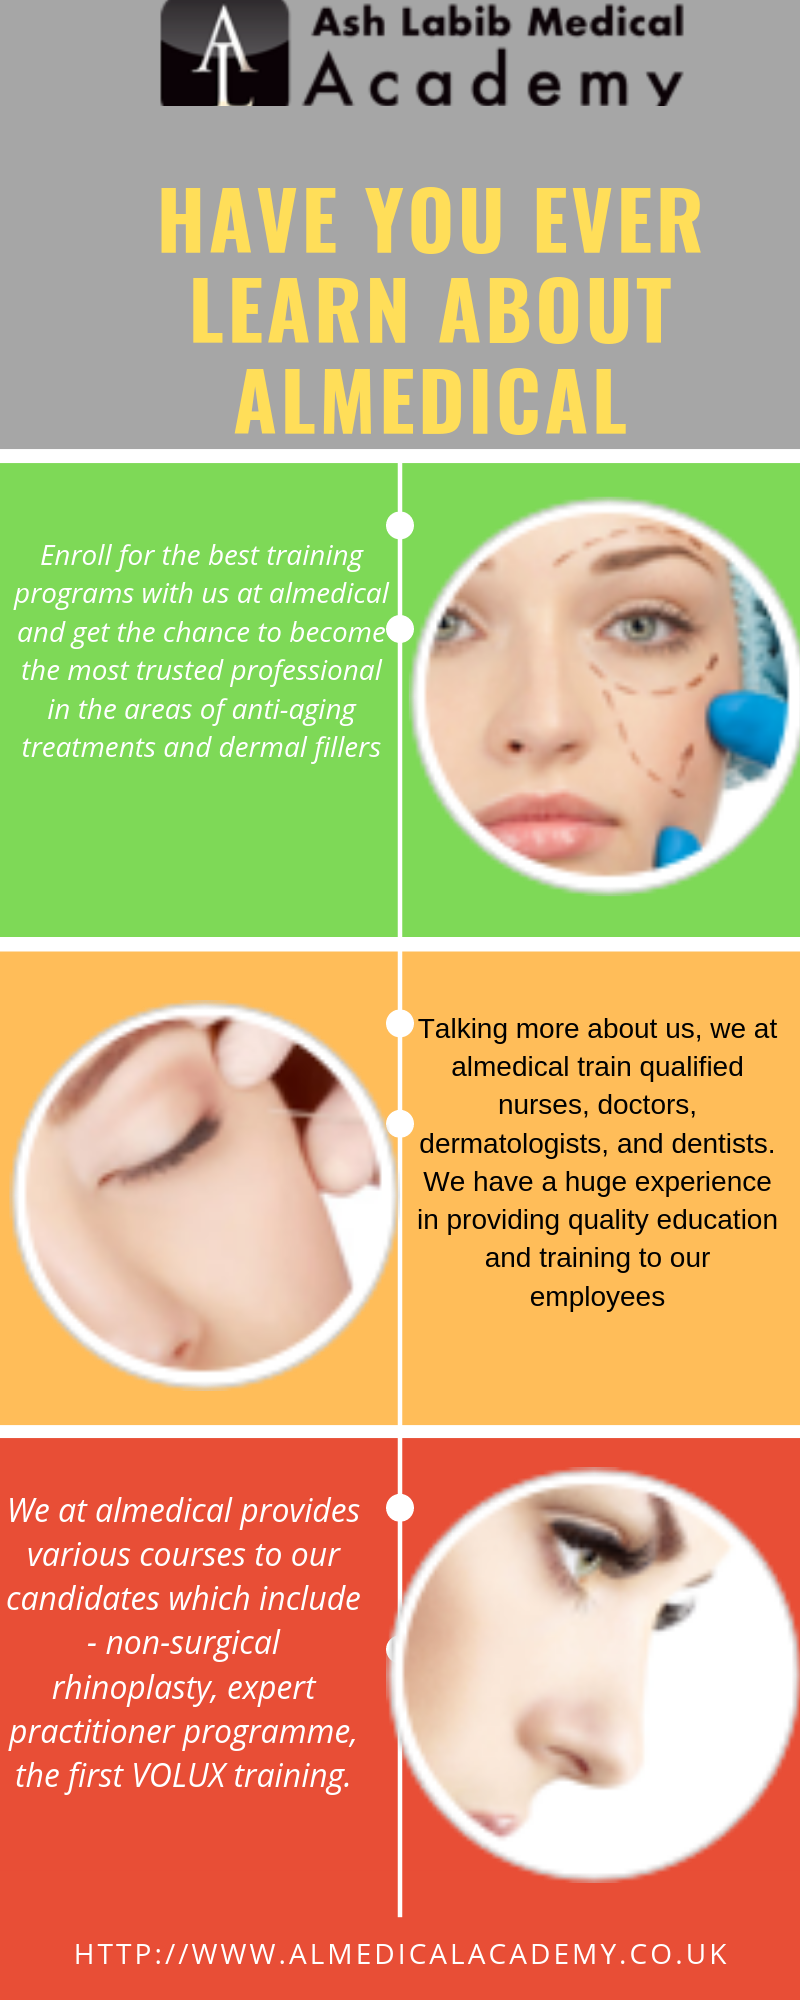 Professional Treatments Almedical Antiaging Training Programs Trusted Fillers Become Chance Dermal Enroll